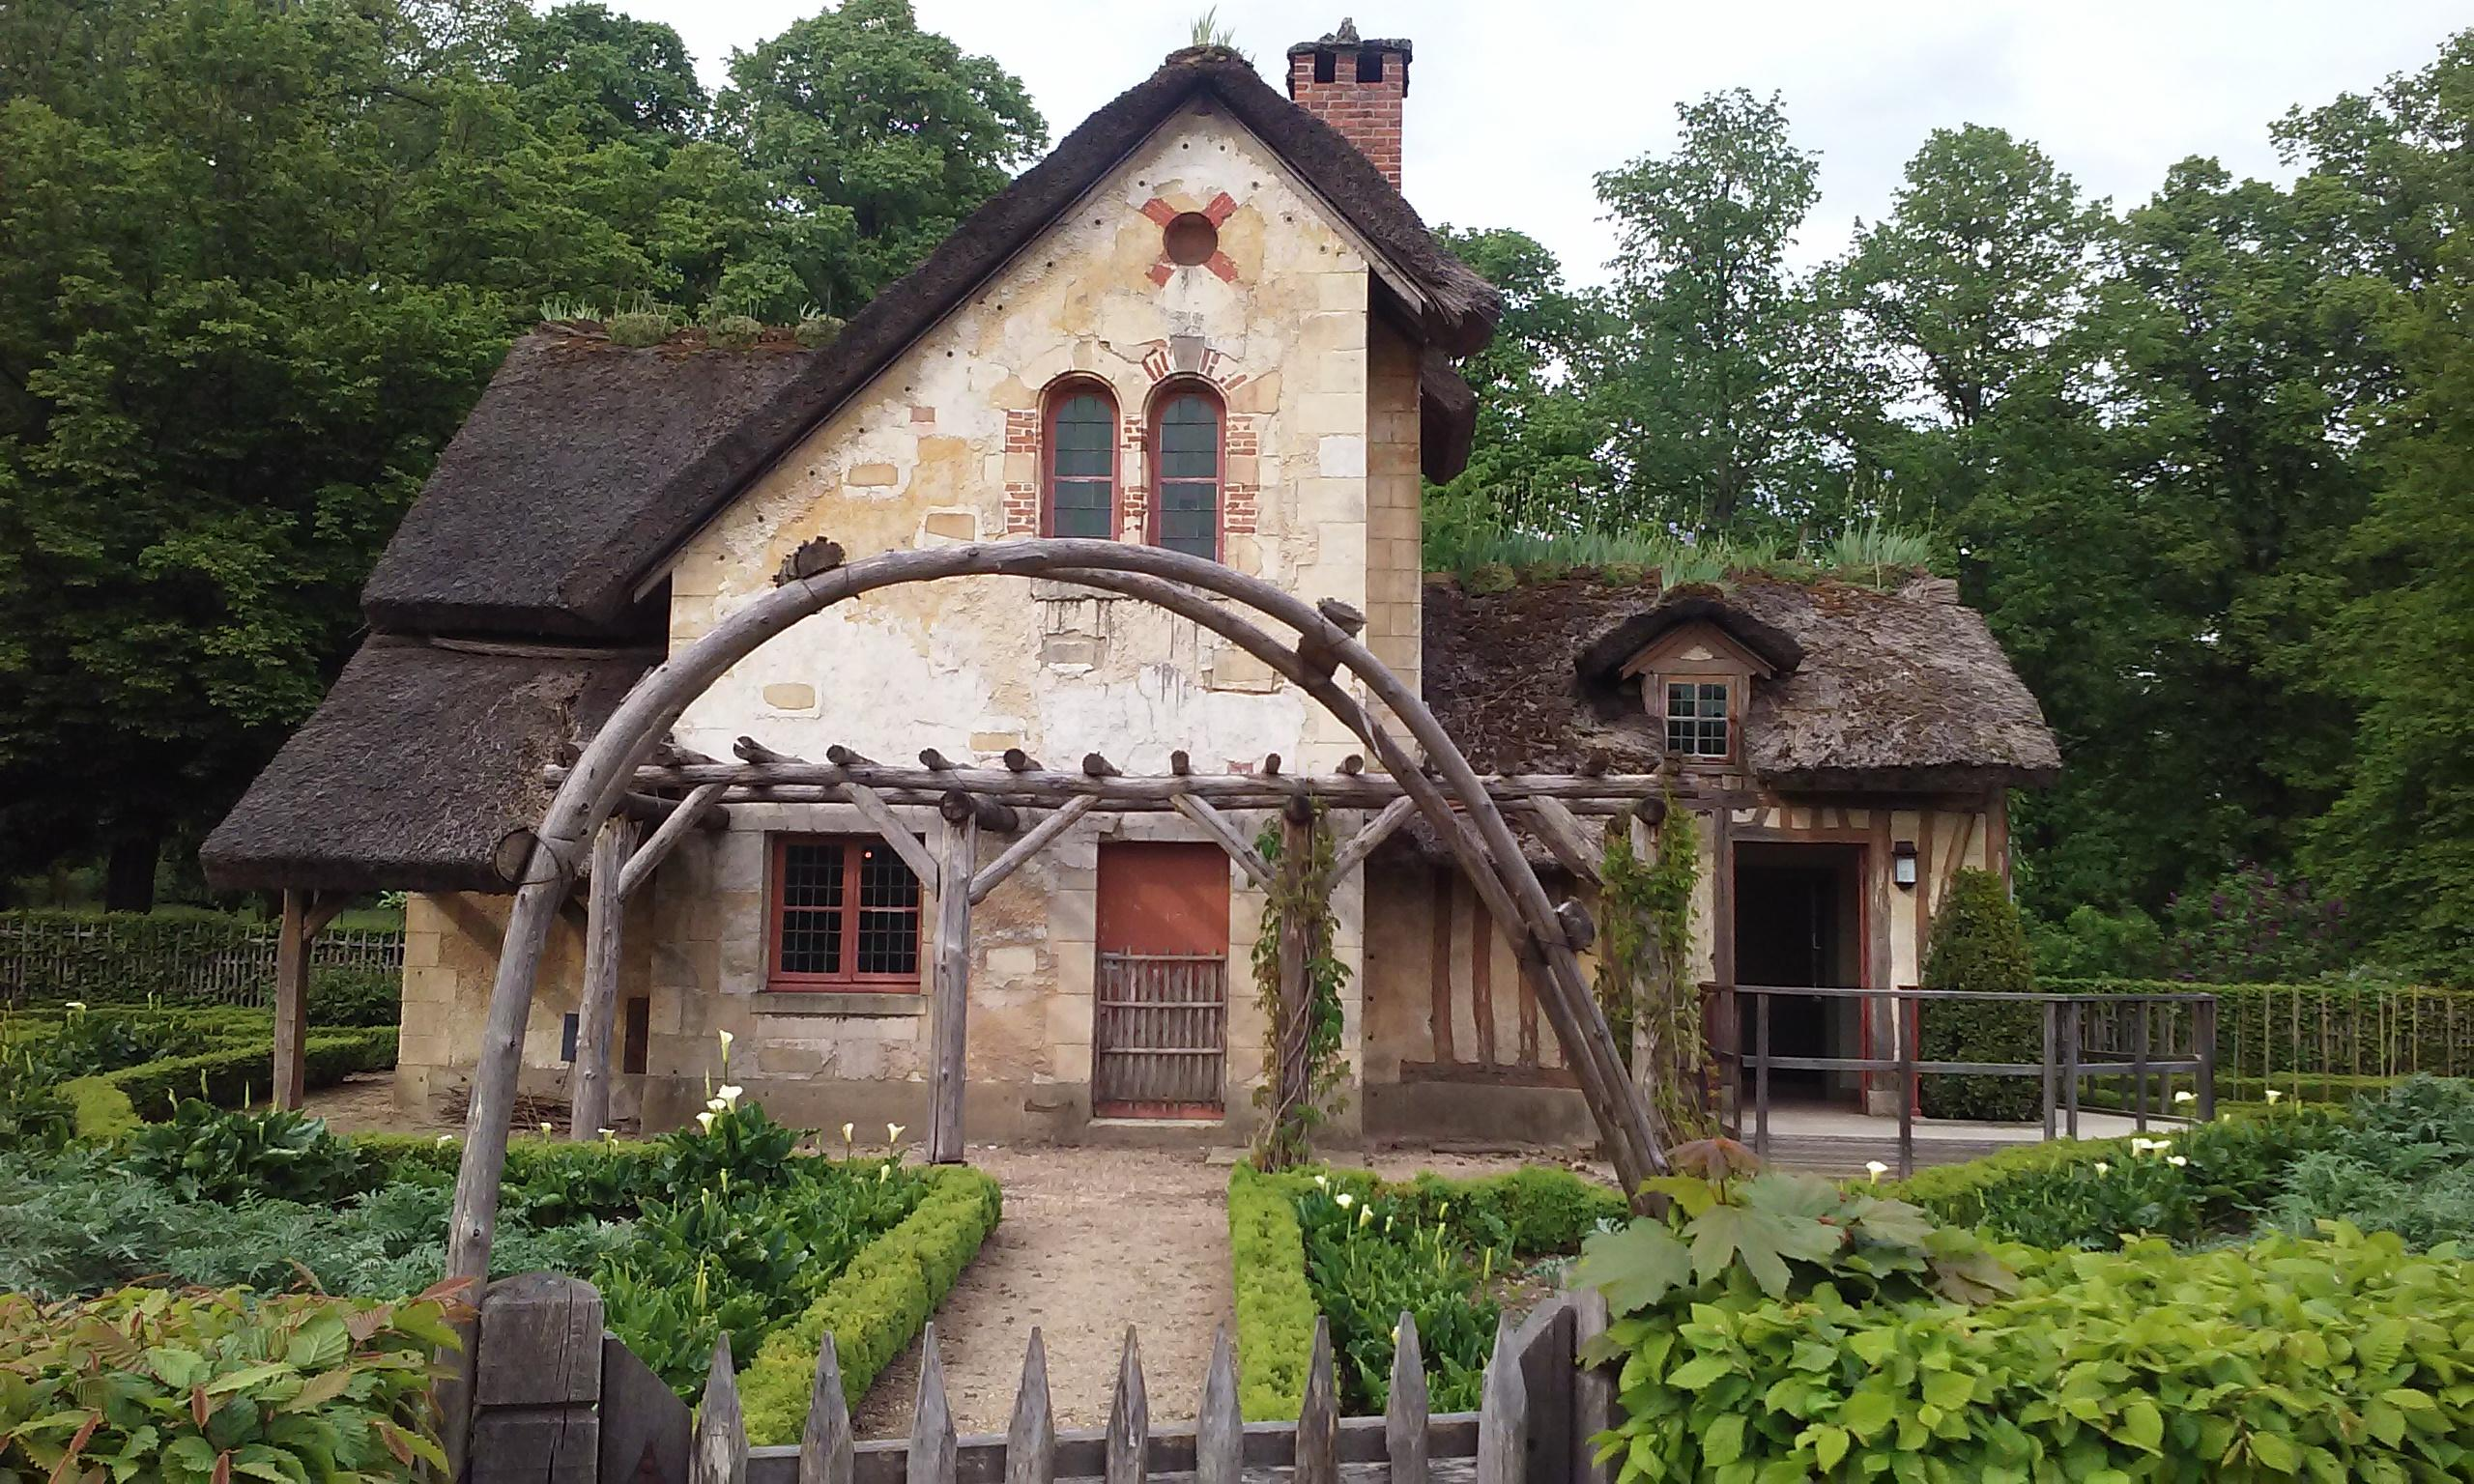 Marie Antoinette's English cottage at Versailles